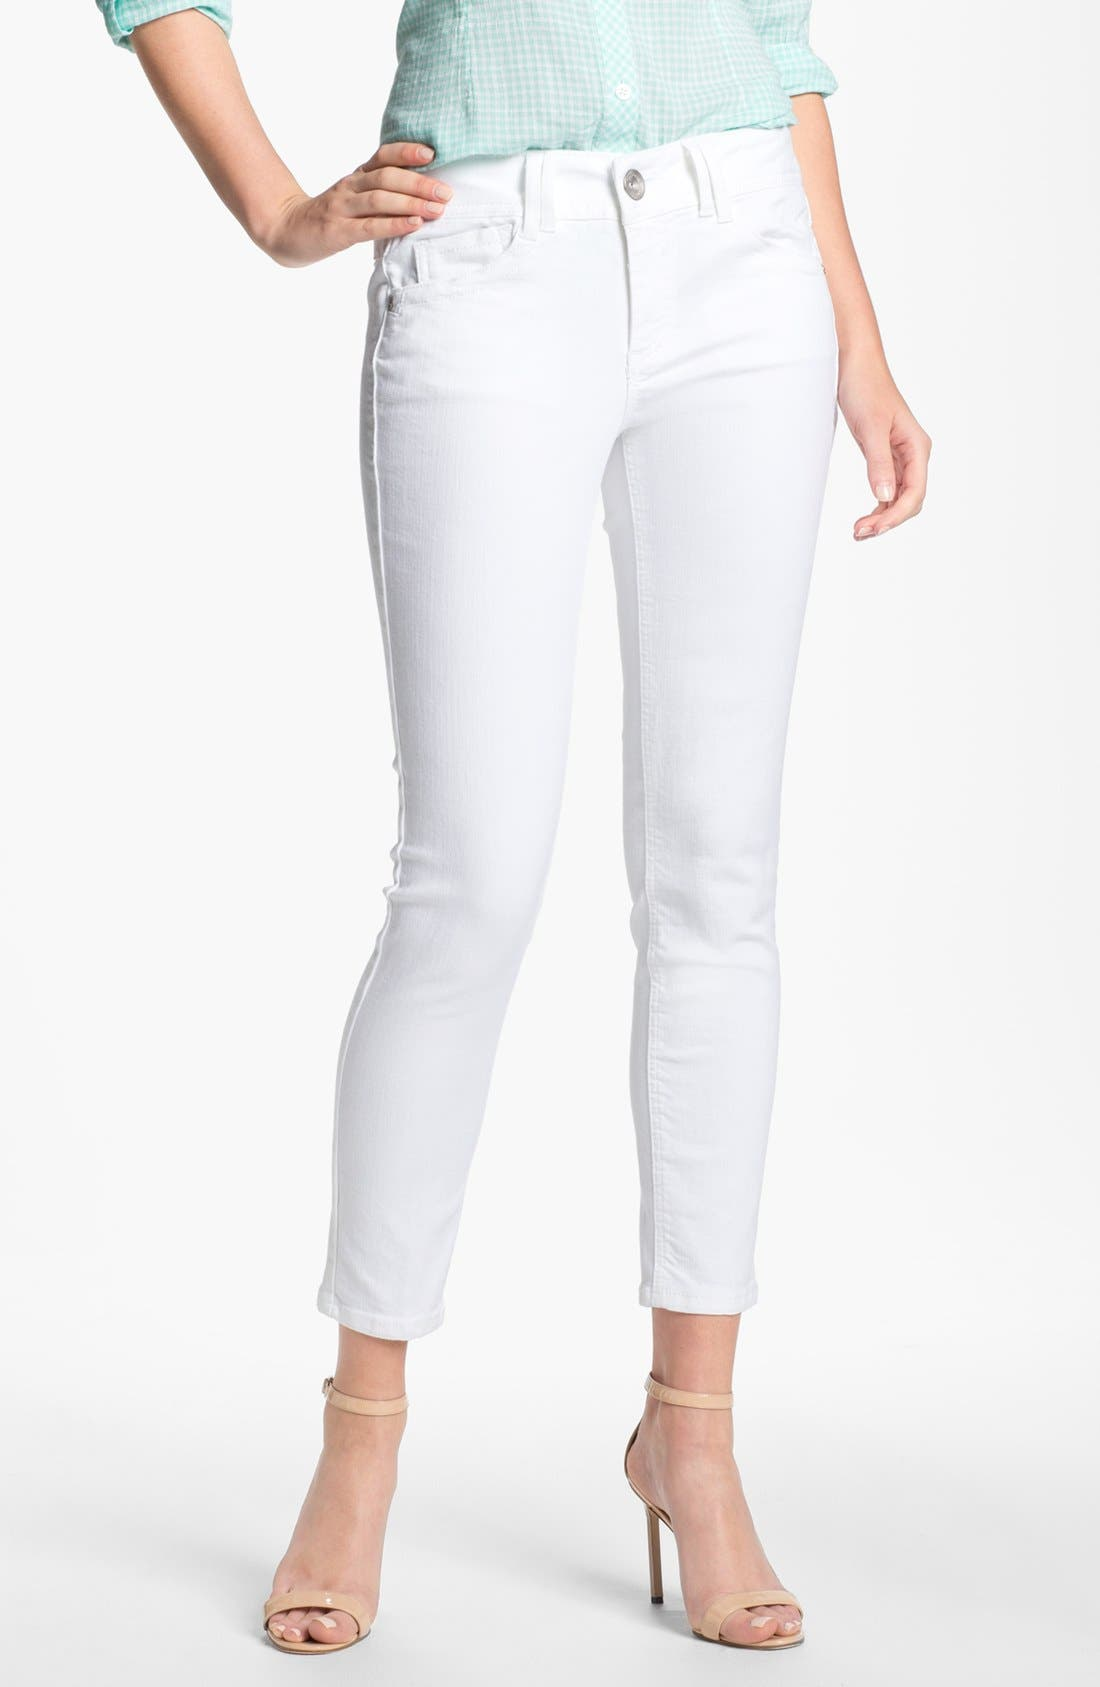 Main Image - Wit & Wisdom Colored Denim Skinny Jeans (Nordstrom Exclusive)